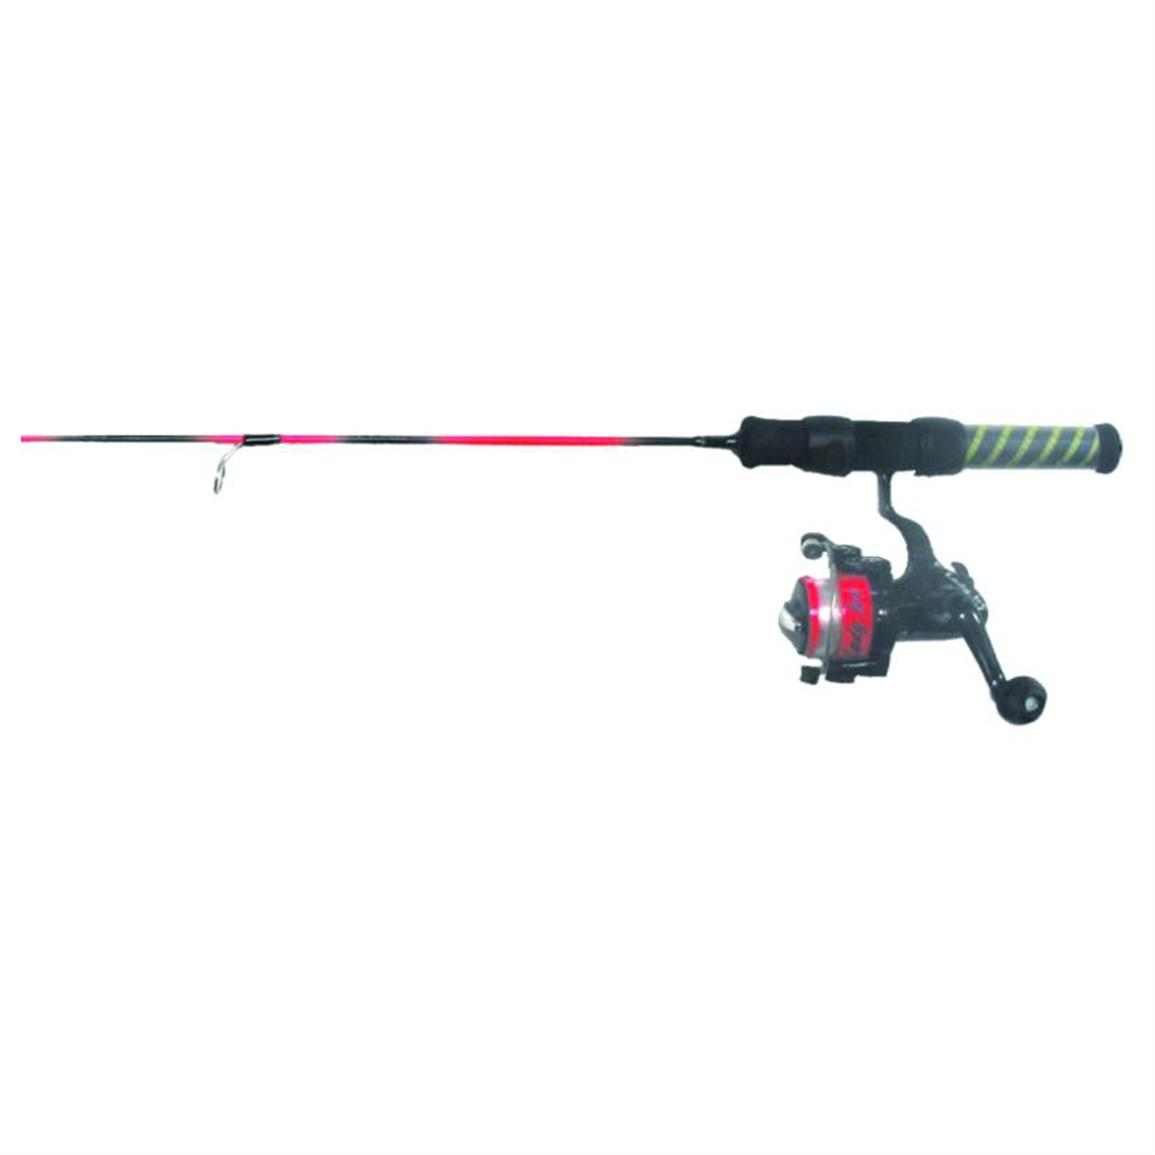 H.T. Enterprises® Deluxe Lady Ice Fishing Combo